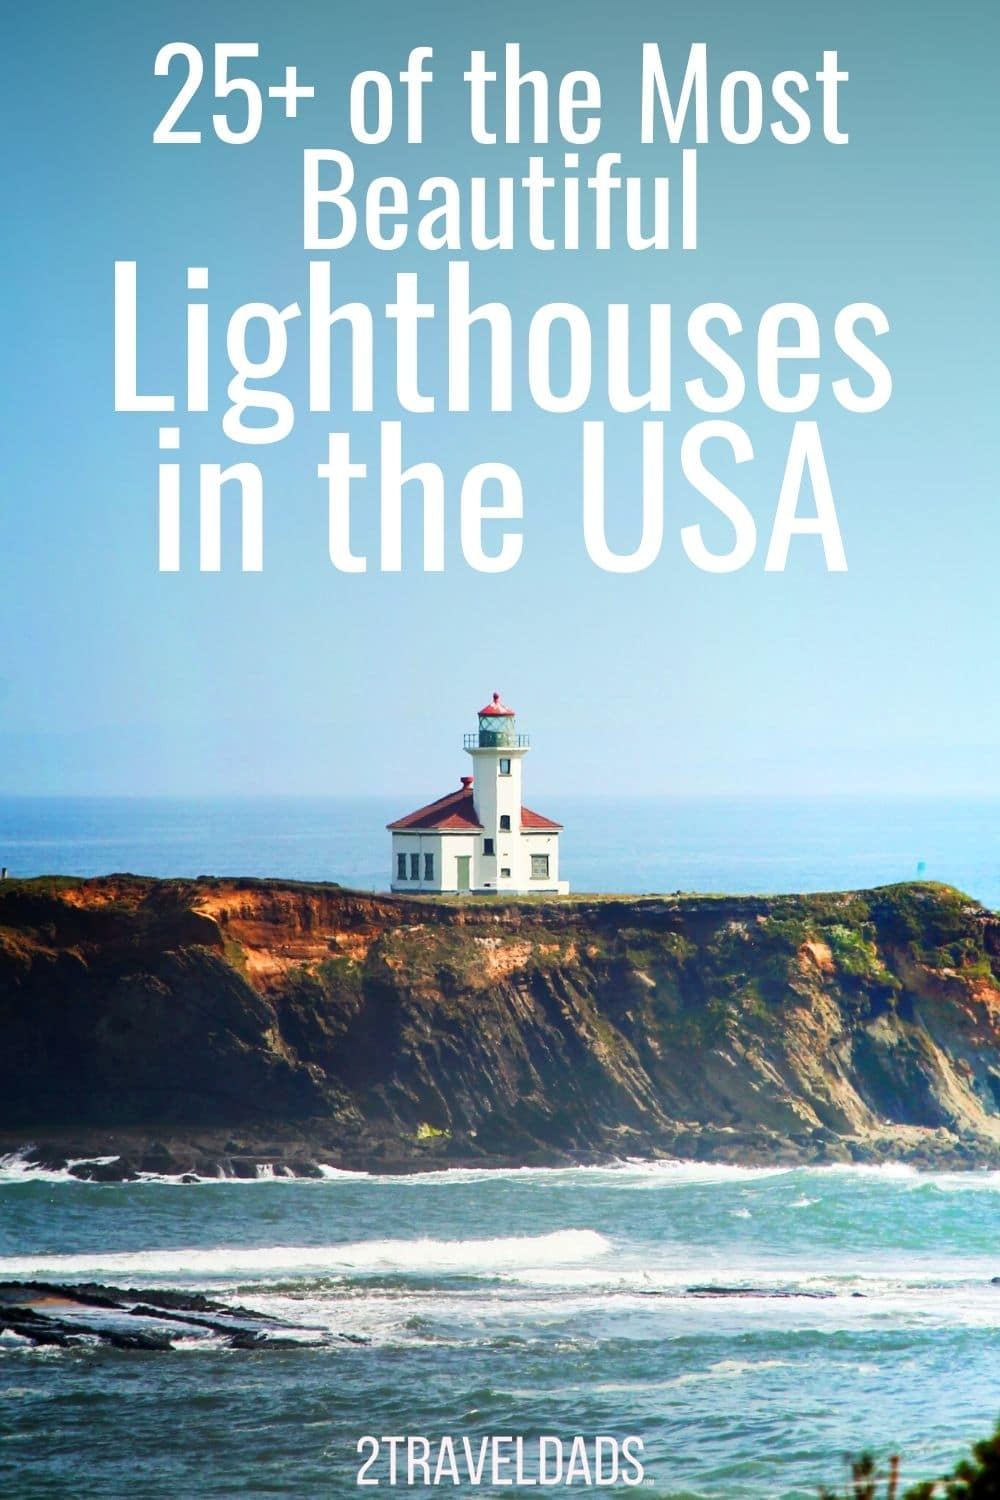 There are more than 100 lighthouses in the USA. These picks are beautiful, easy to visit and make for picturesque road trip adventures, from the Florida Keys to the Oregon Coast.